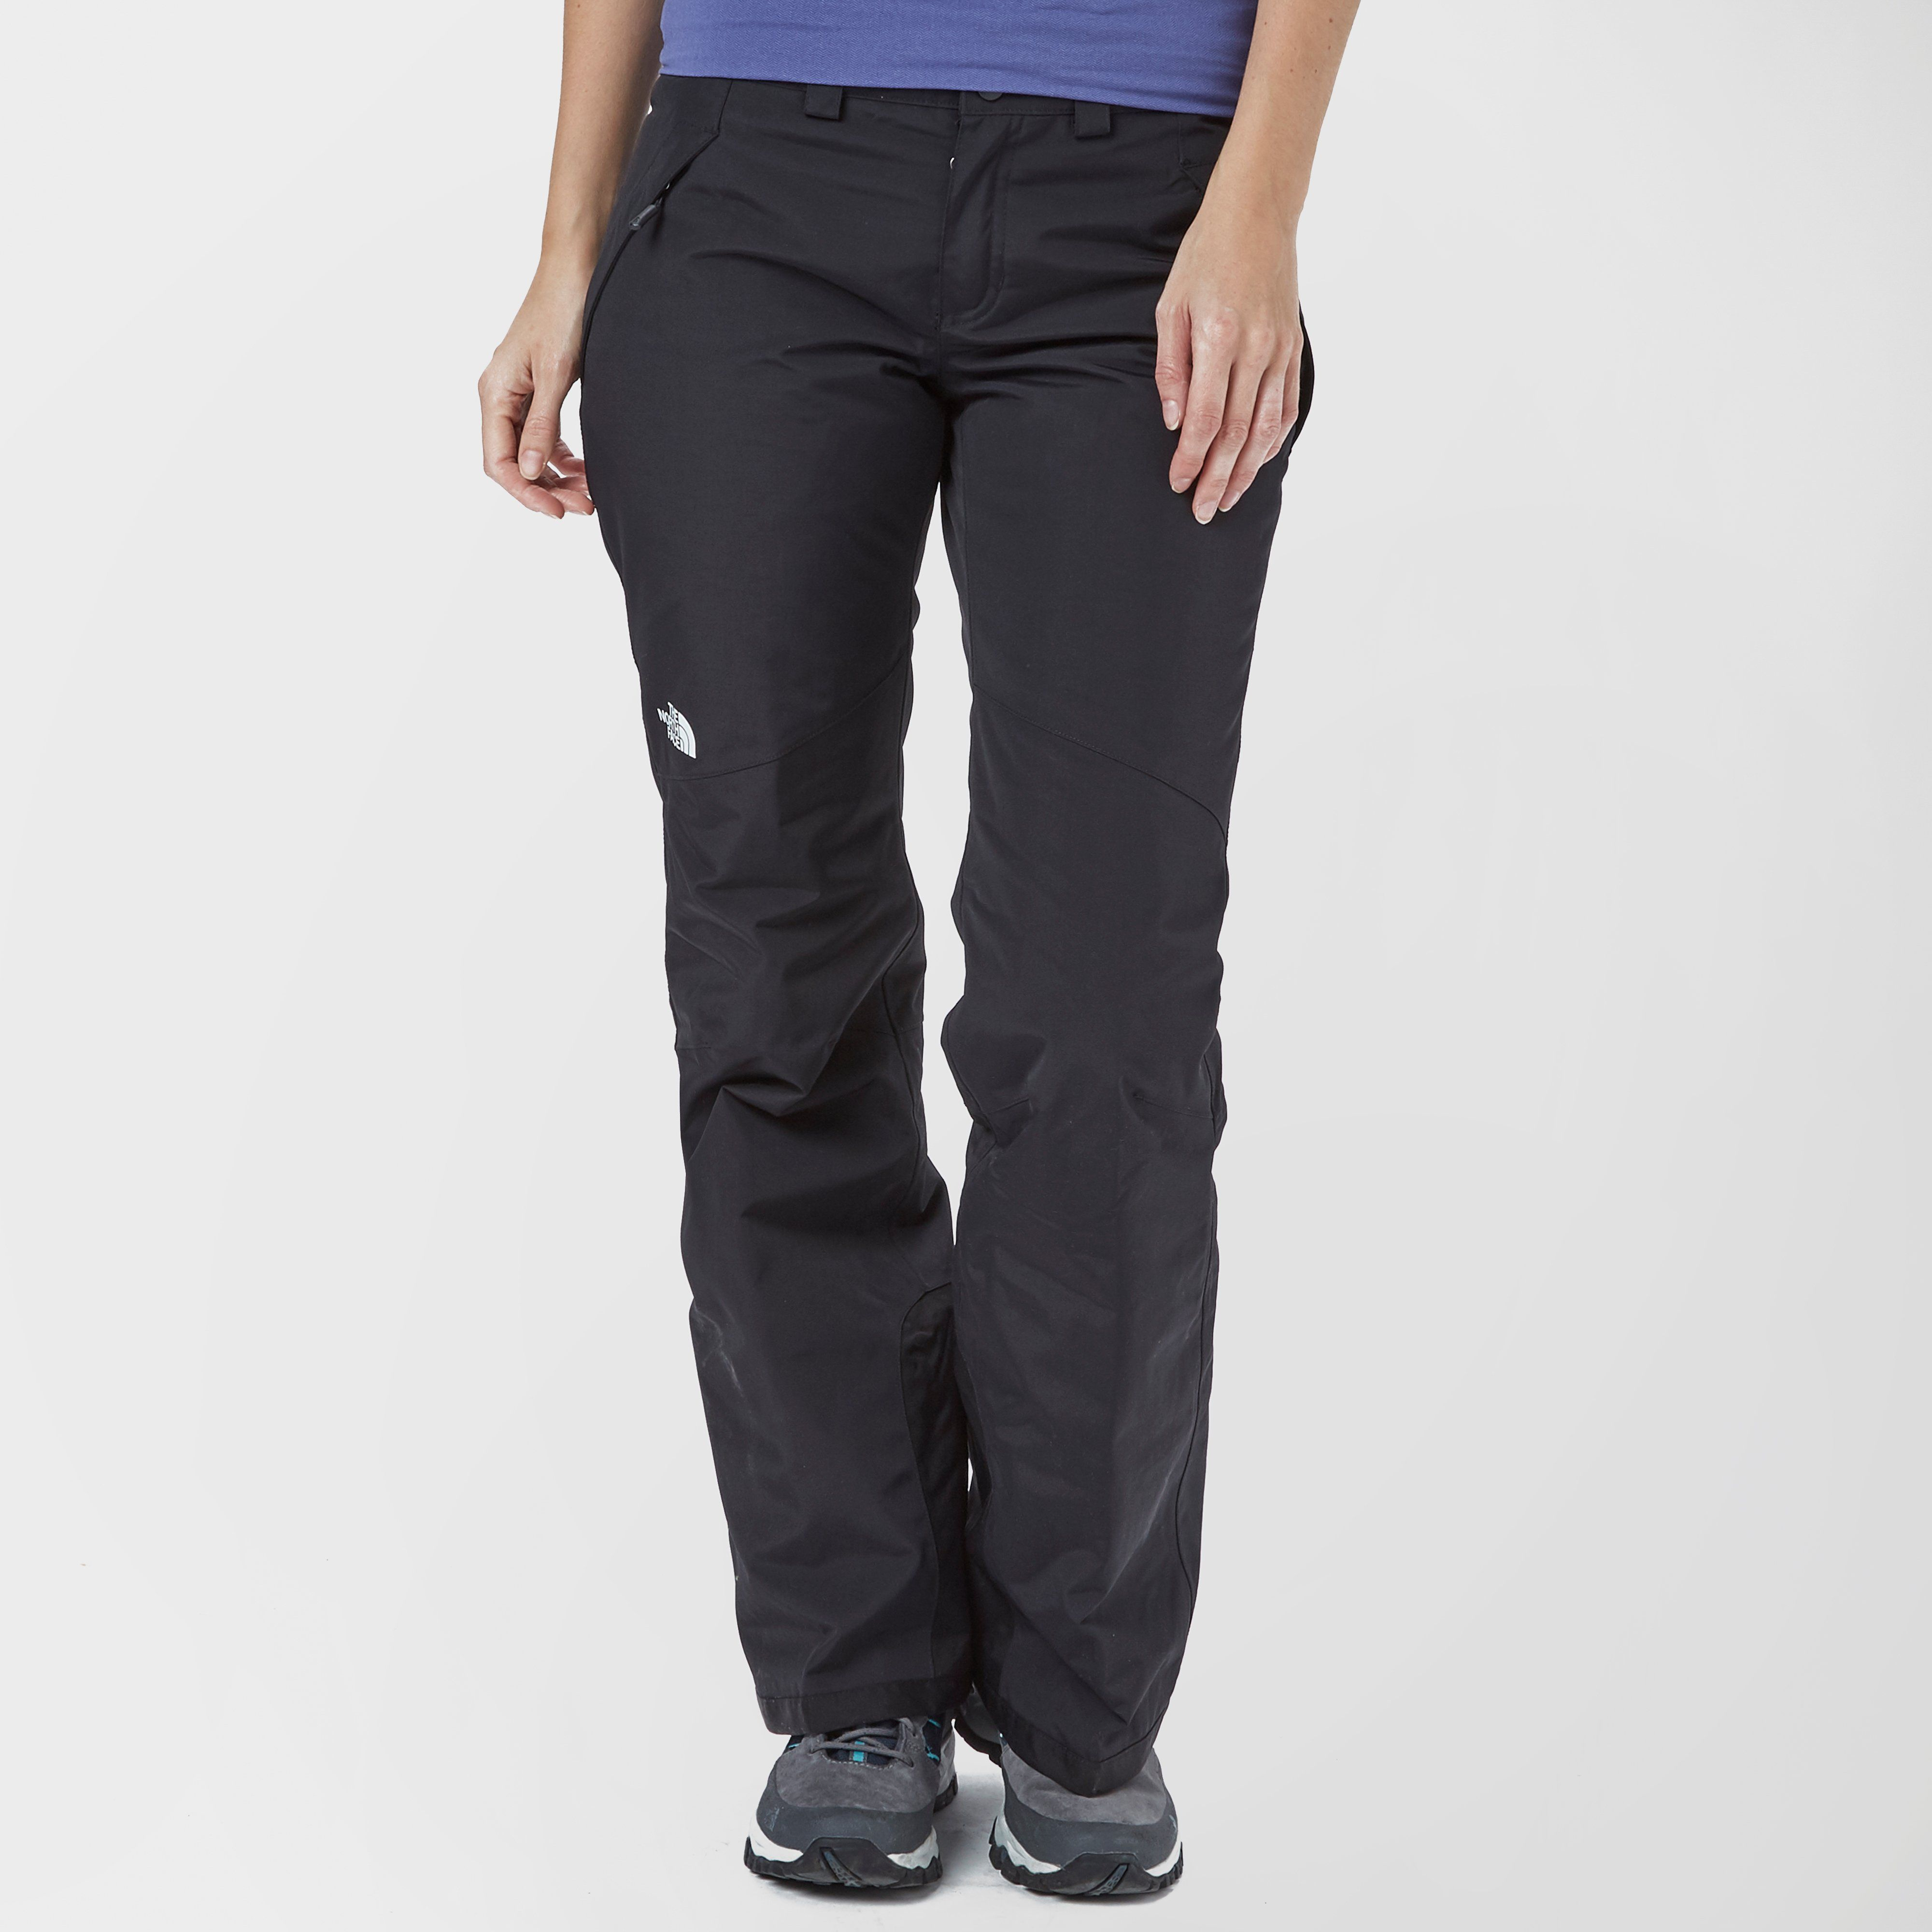 THE NORTH FACE Women's Presena Ski Pants